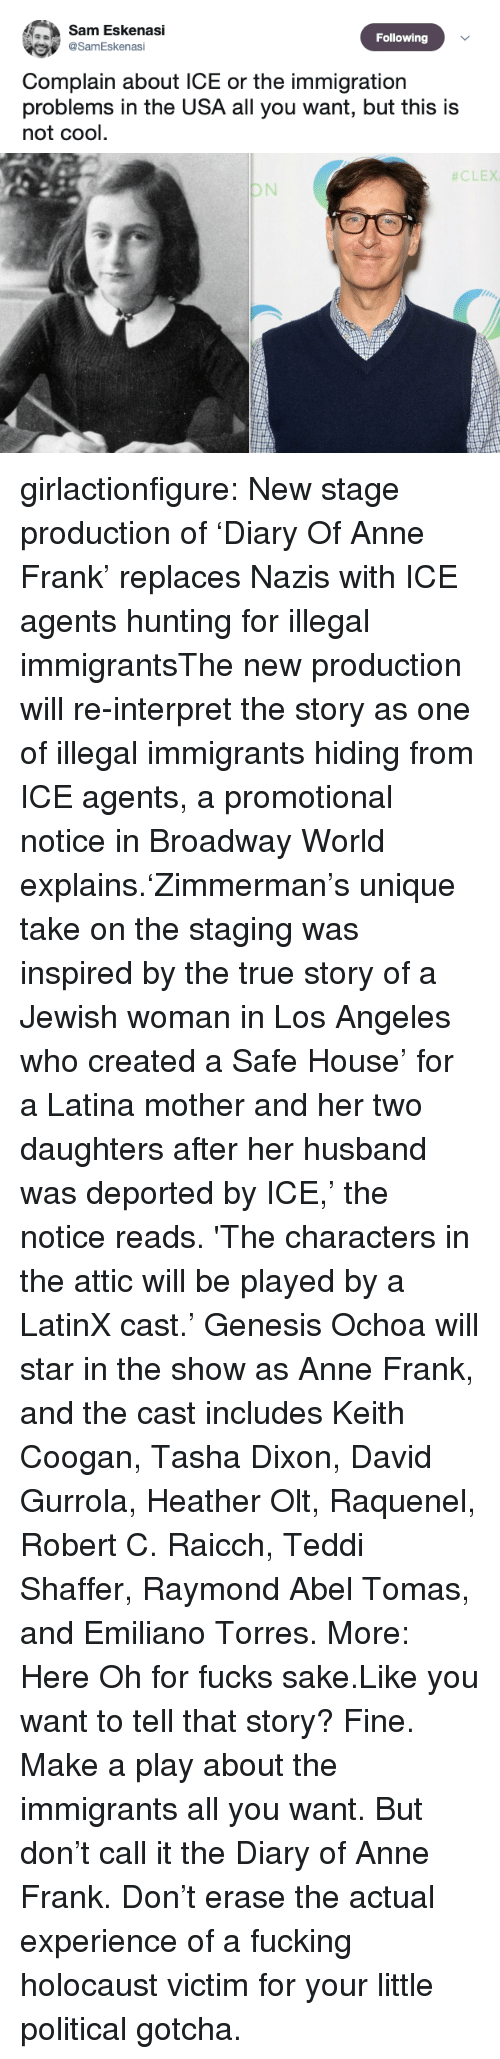 Fucking, News, and True: Sam Eskenasi  Following  @SamEskenasi  Complain about ICE or the immigration  problems in the USA all you want, but this is  not cool.   girlactionfigure:  New stage production of 'Diary Of Anne Frank' replaces Nazis with ICE agents hunting for illegal immigrantsThe new production will re-interpret the story as one of illegal immigrants hiding from ICE agents, a promotional notice in Broadway World explains.'Zimmerman's unique take on the staging was inspired by the true story of a Jewish woman in Los Angeles who created a Safe House' for a Latina mother and her two daughters after her husband was deported by ICE,' the notice reads. 'The characters in the attic will be played by a LatinX cast.' Genesis Ochoa will star in the show as Anne Frank, and the cast includes Keith Coogan, Tasha Dixon, David Gurrola, Heather Olt, Raquenel, Robert C. Raicch, Teddi Shaffer, Raymond Abel Tomas, and Emiliano Torres. More: Here  Oh for fucks sake.Like you want to tell that story? Fine. Make a play about the immigrants all you want. But don't call it the Diary of Anne Frank. Don't erase the actual experience of a fucking holocaust victim for your little political gotcha.